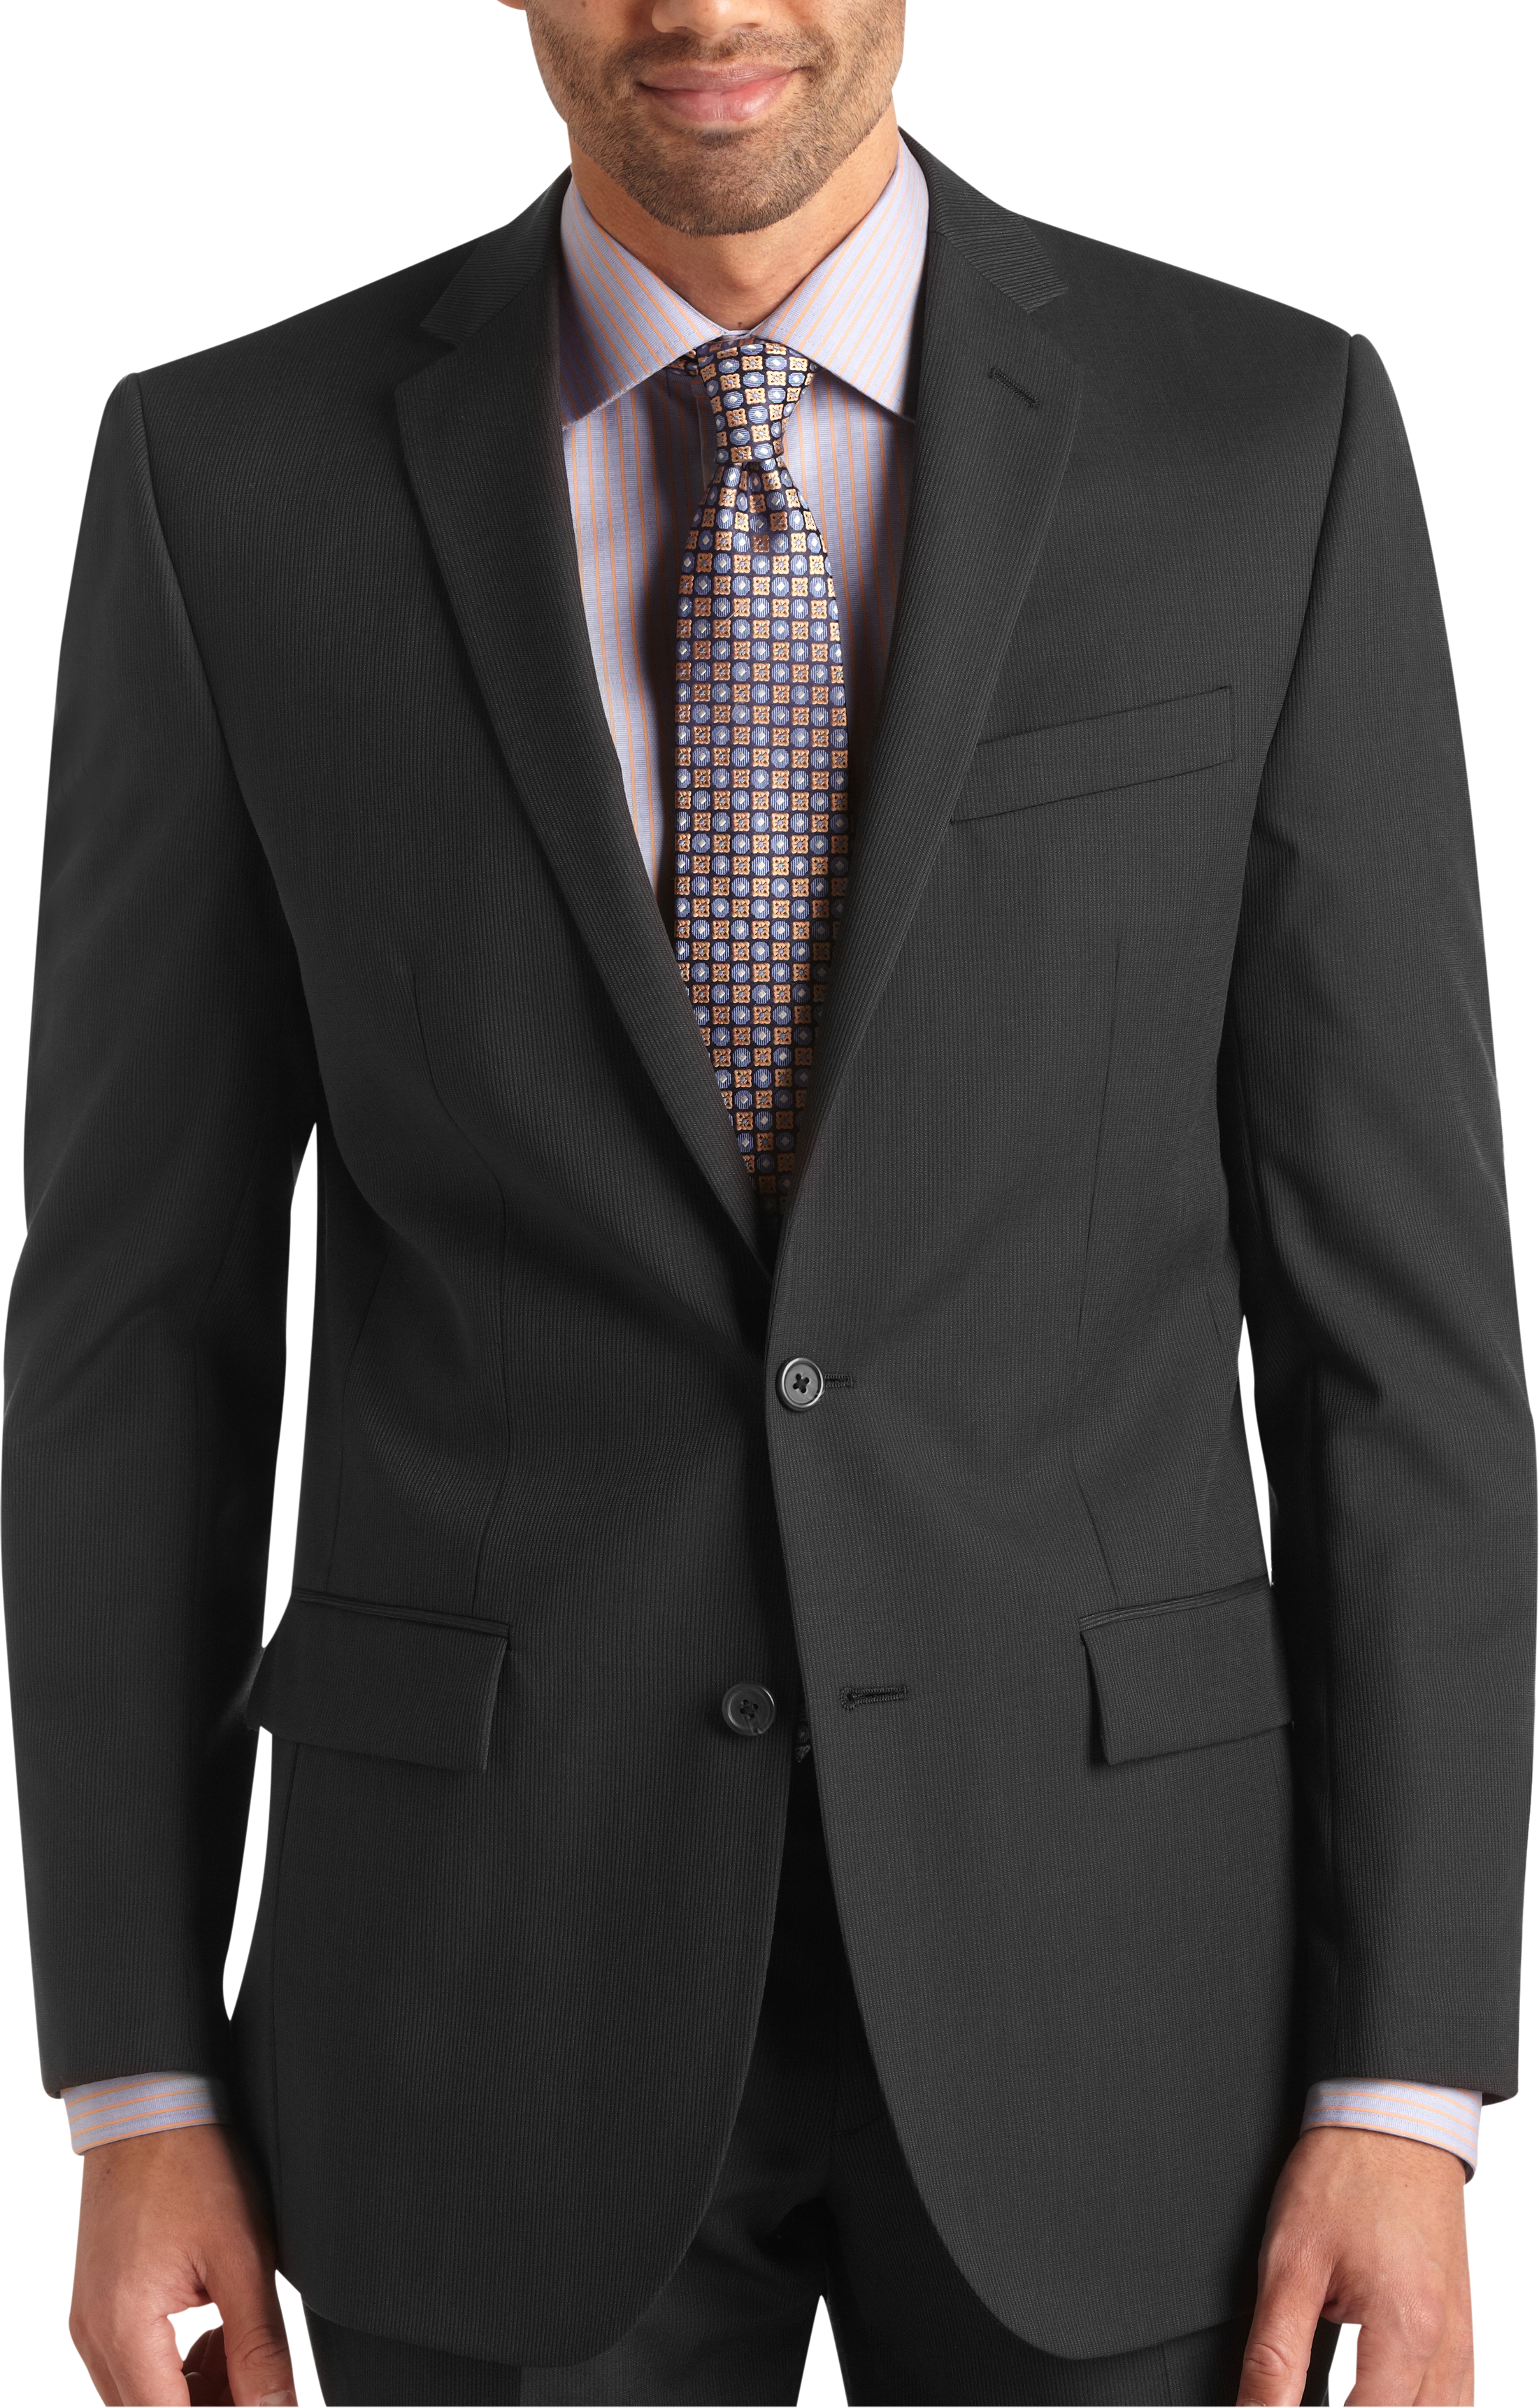 Egara Charcoal Stripe Slim Fit Suit Separates Coat (Charcoal Stripe)